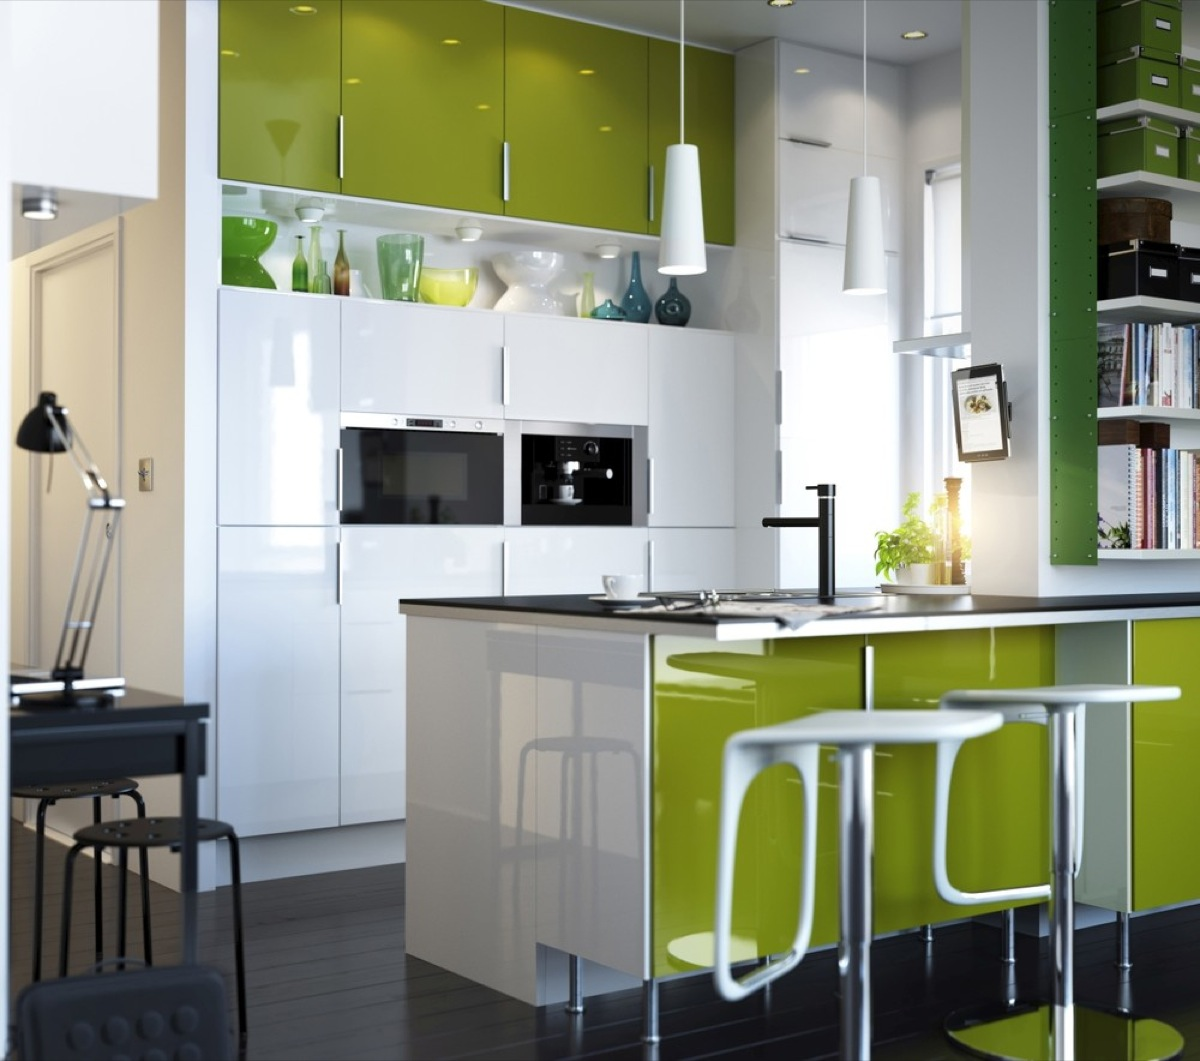 ikea-kitchen-2012-lime-green.jpg